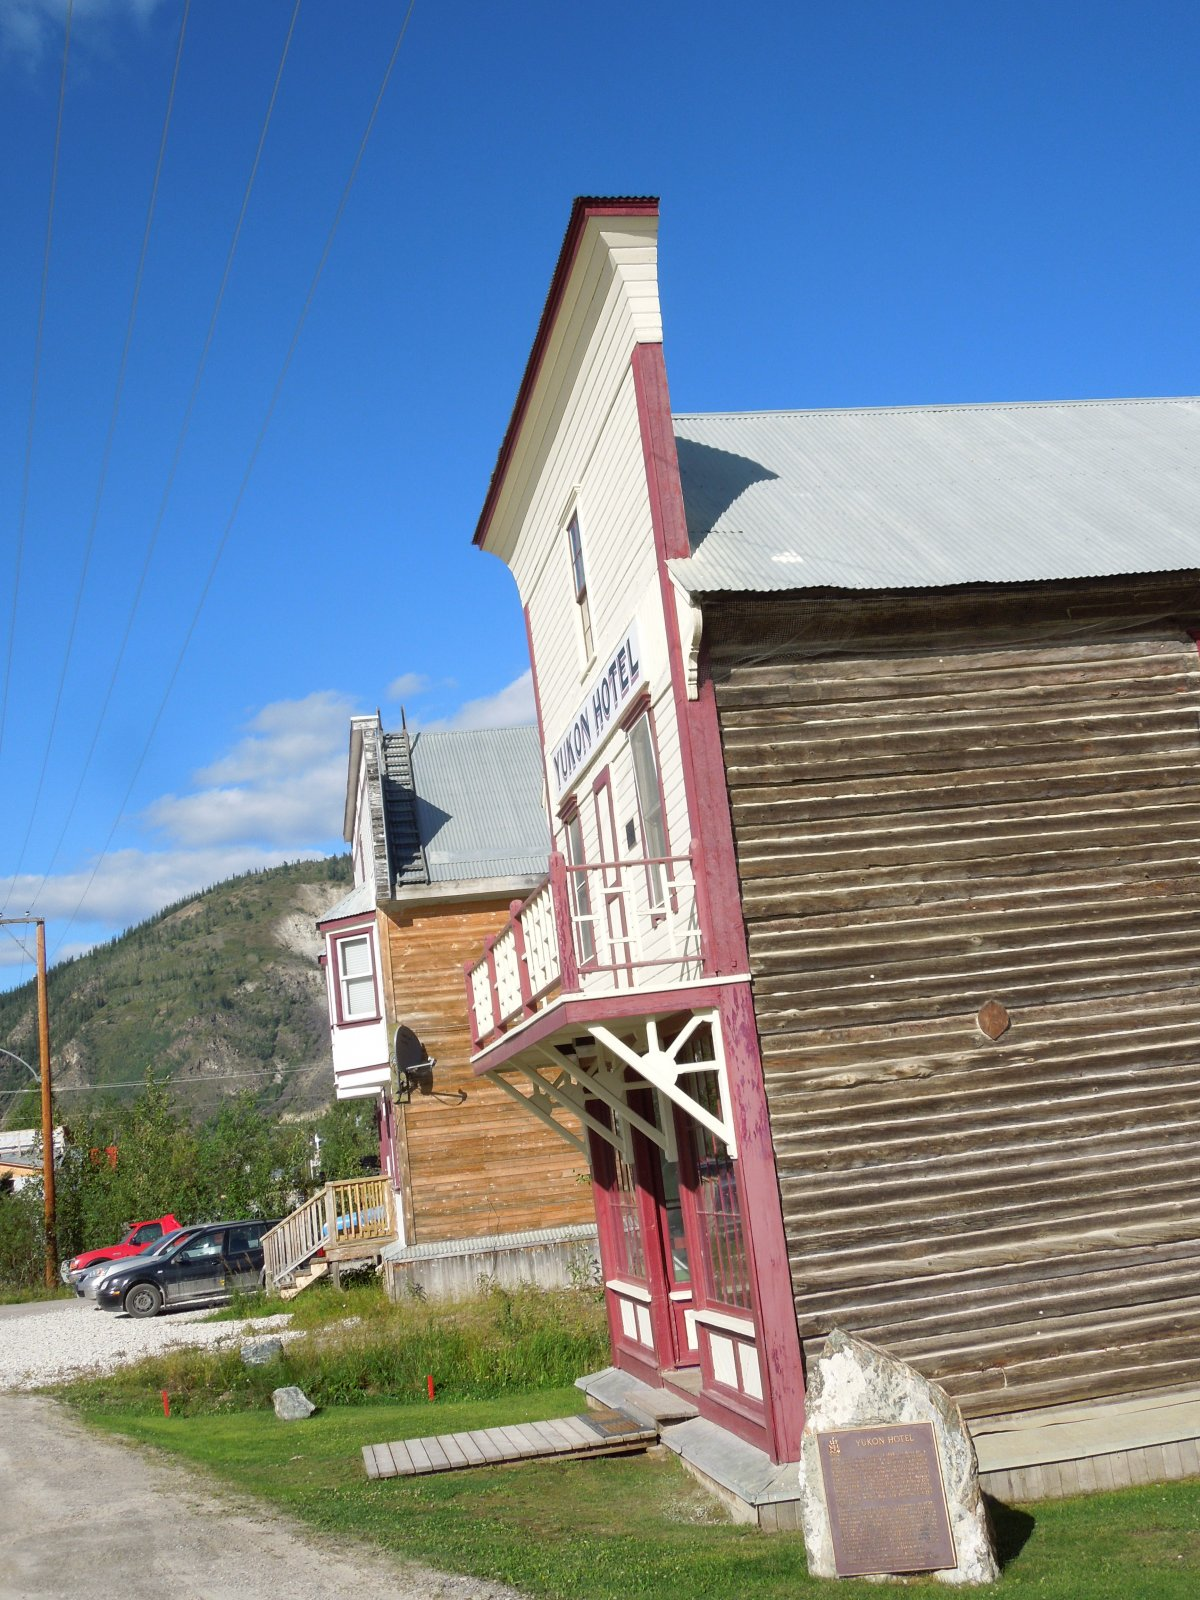 Click image for larger version  Name:Tok to Chicken to Dawson City 334.jpg Views:73 Size:380.5 KB ID:221753